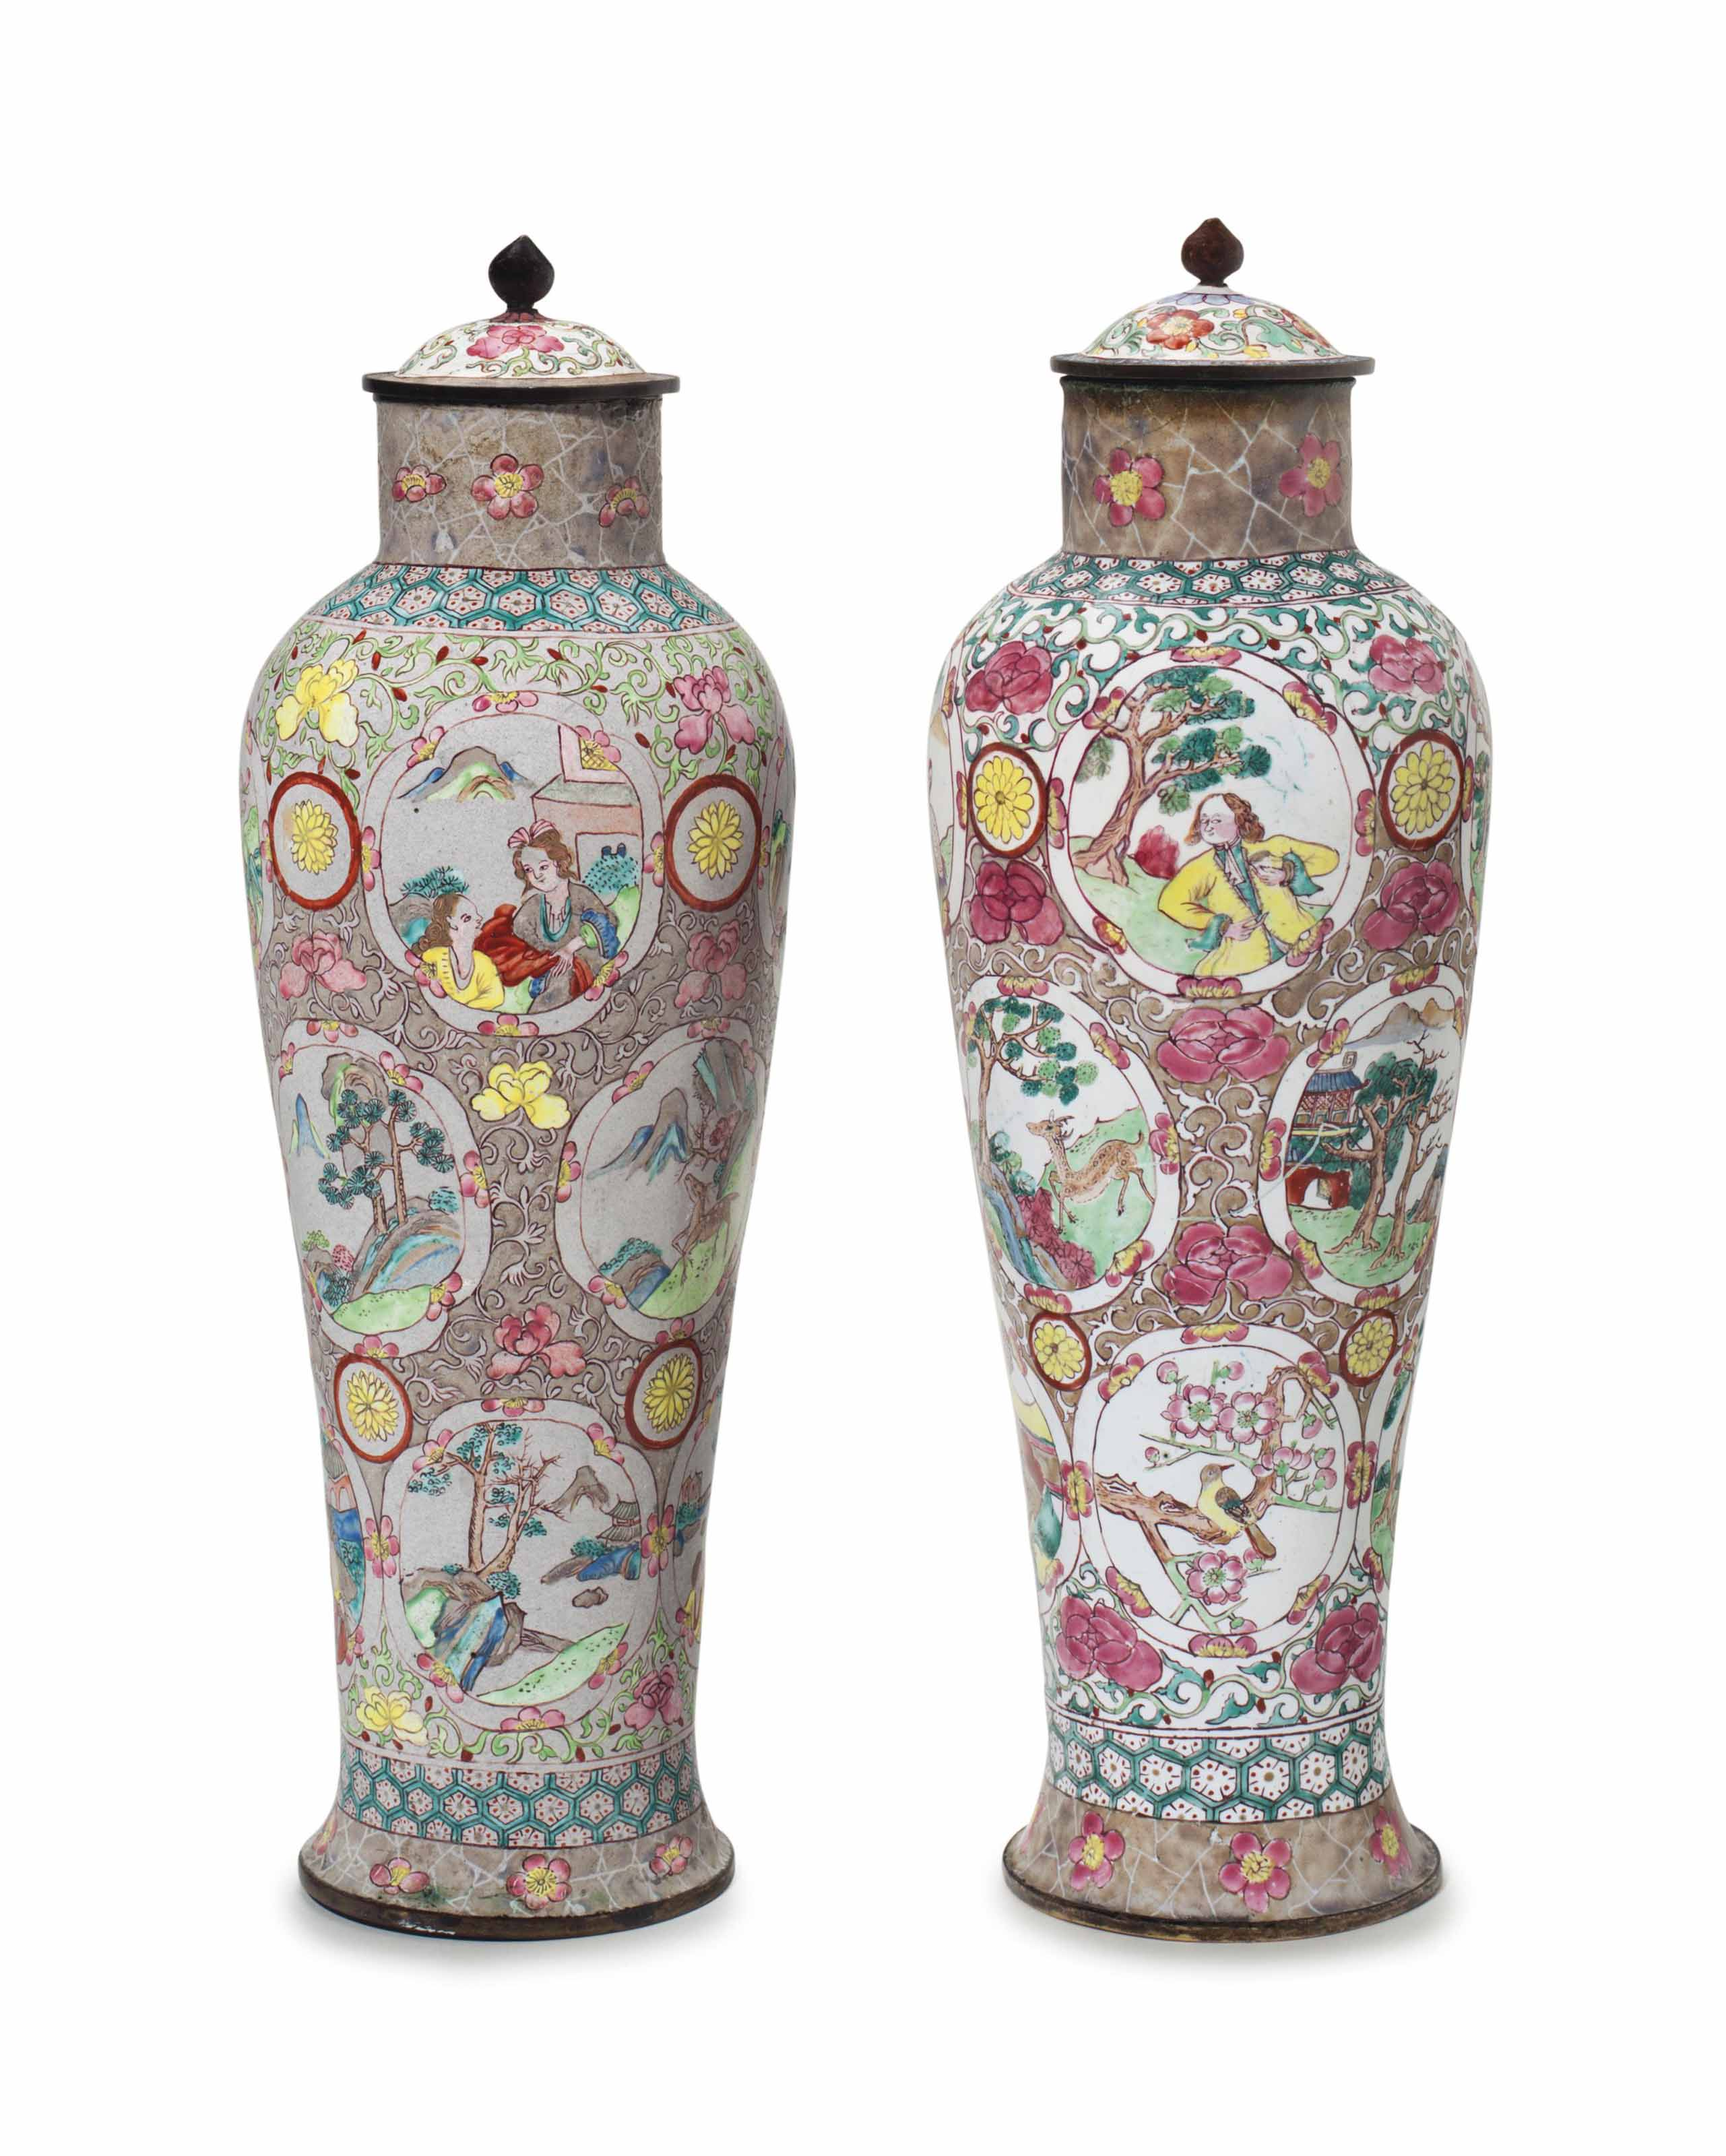 AN UNUSUAL PAIR OF ENAMEL VASES AND COVERS